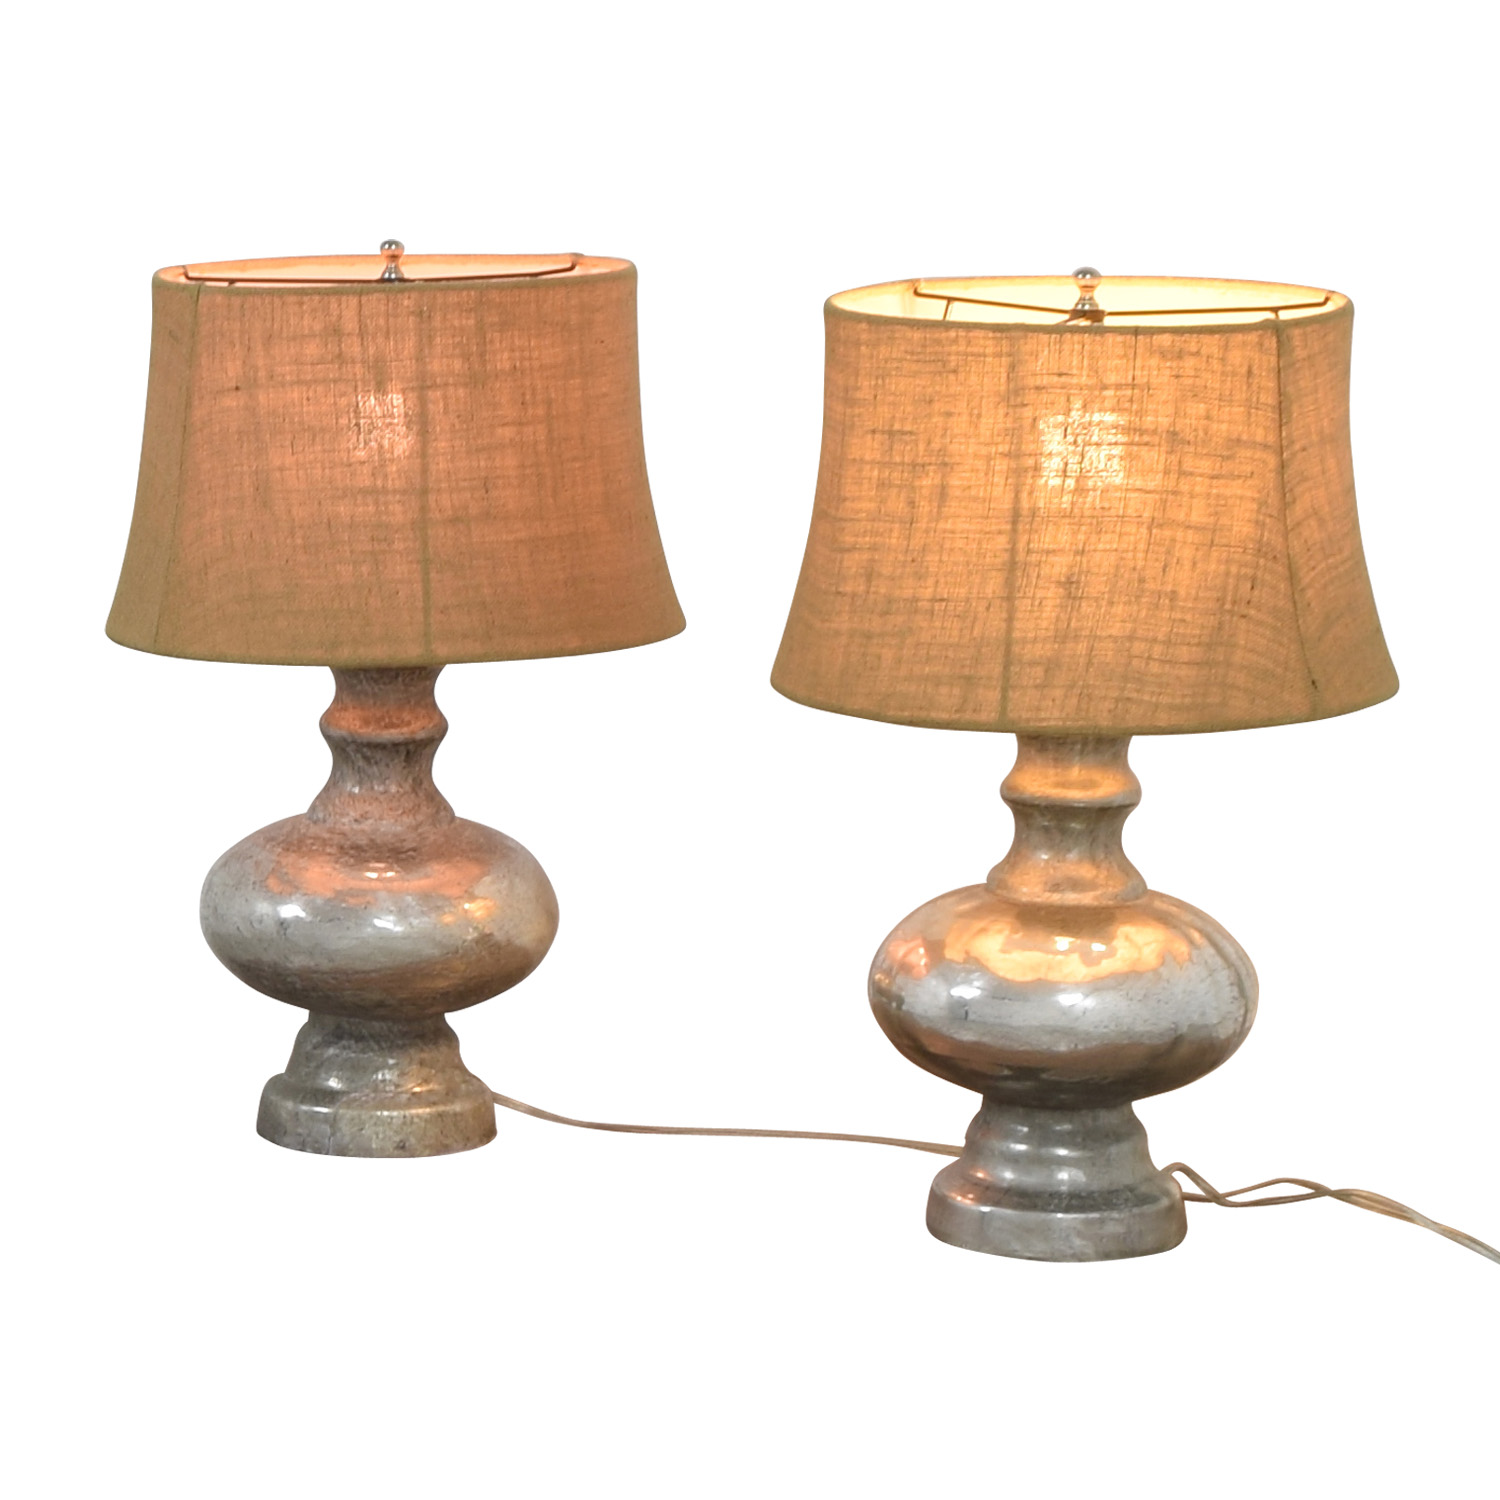 Pottery Barn Pottery Barn Antique Mercury Glass Table Lamps coupon